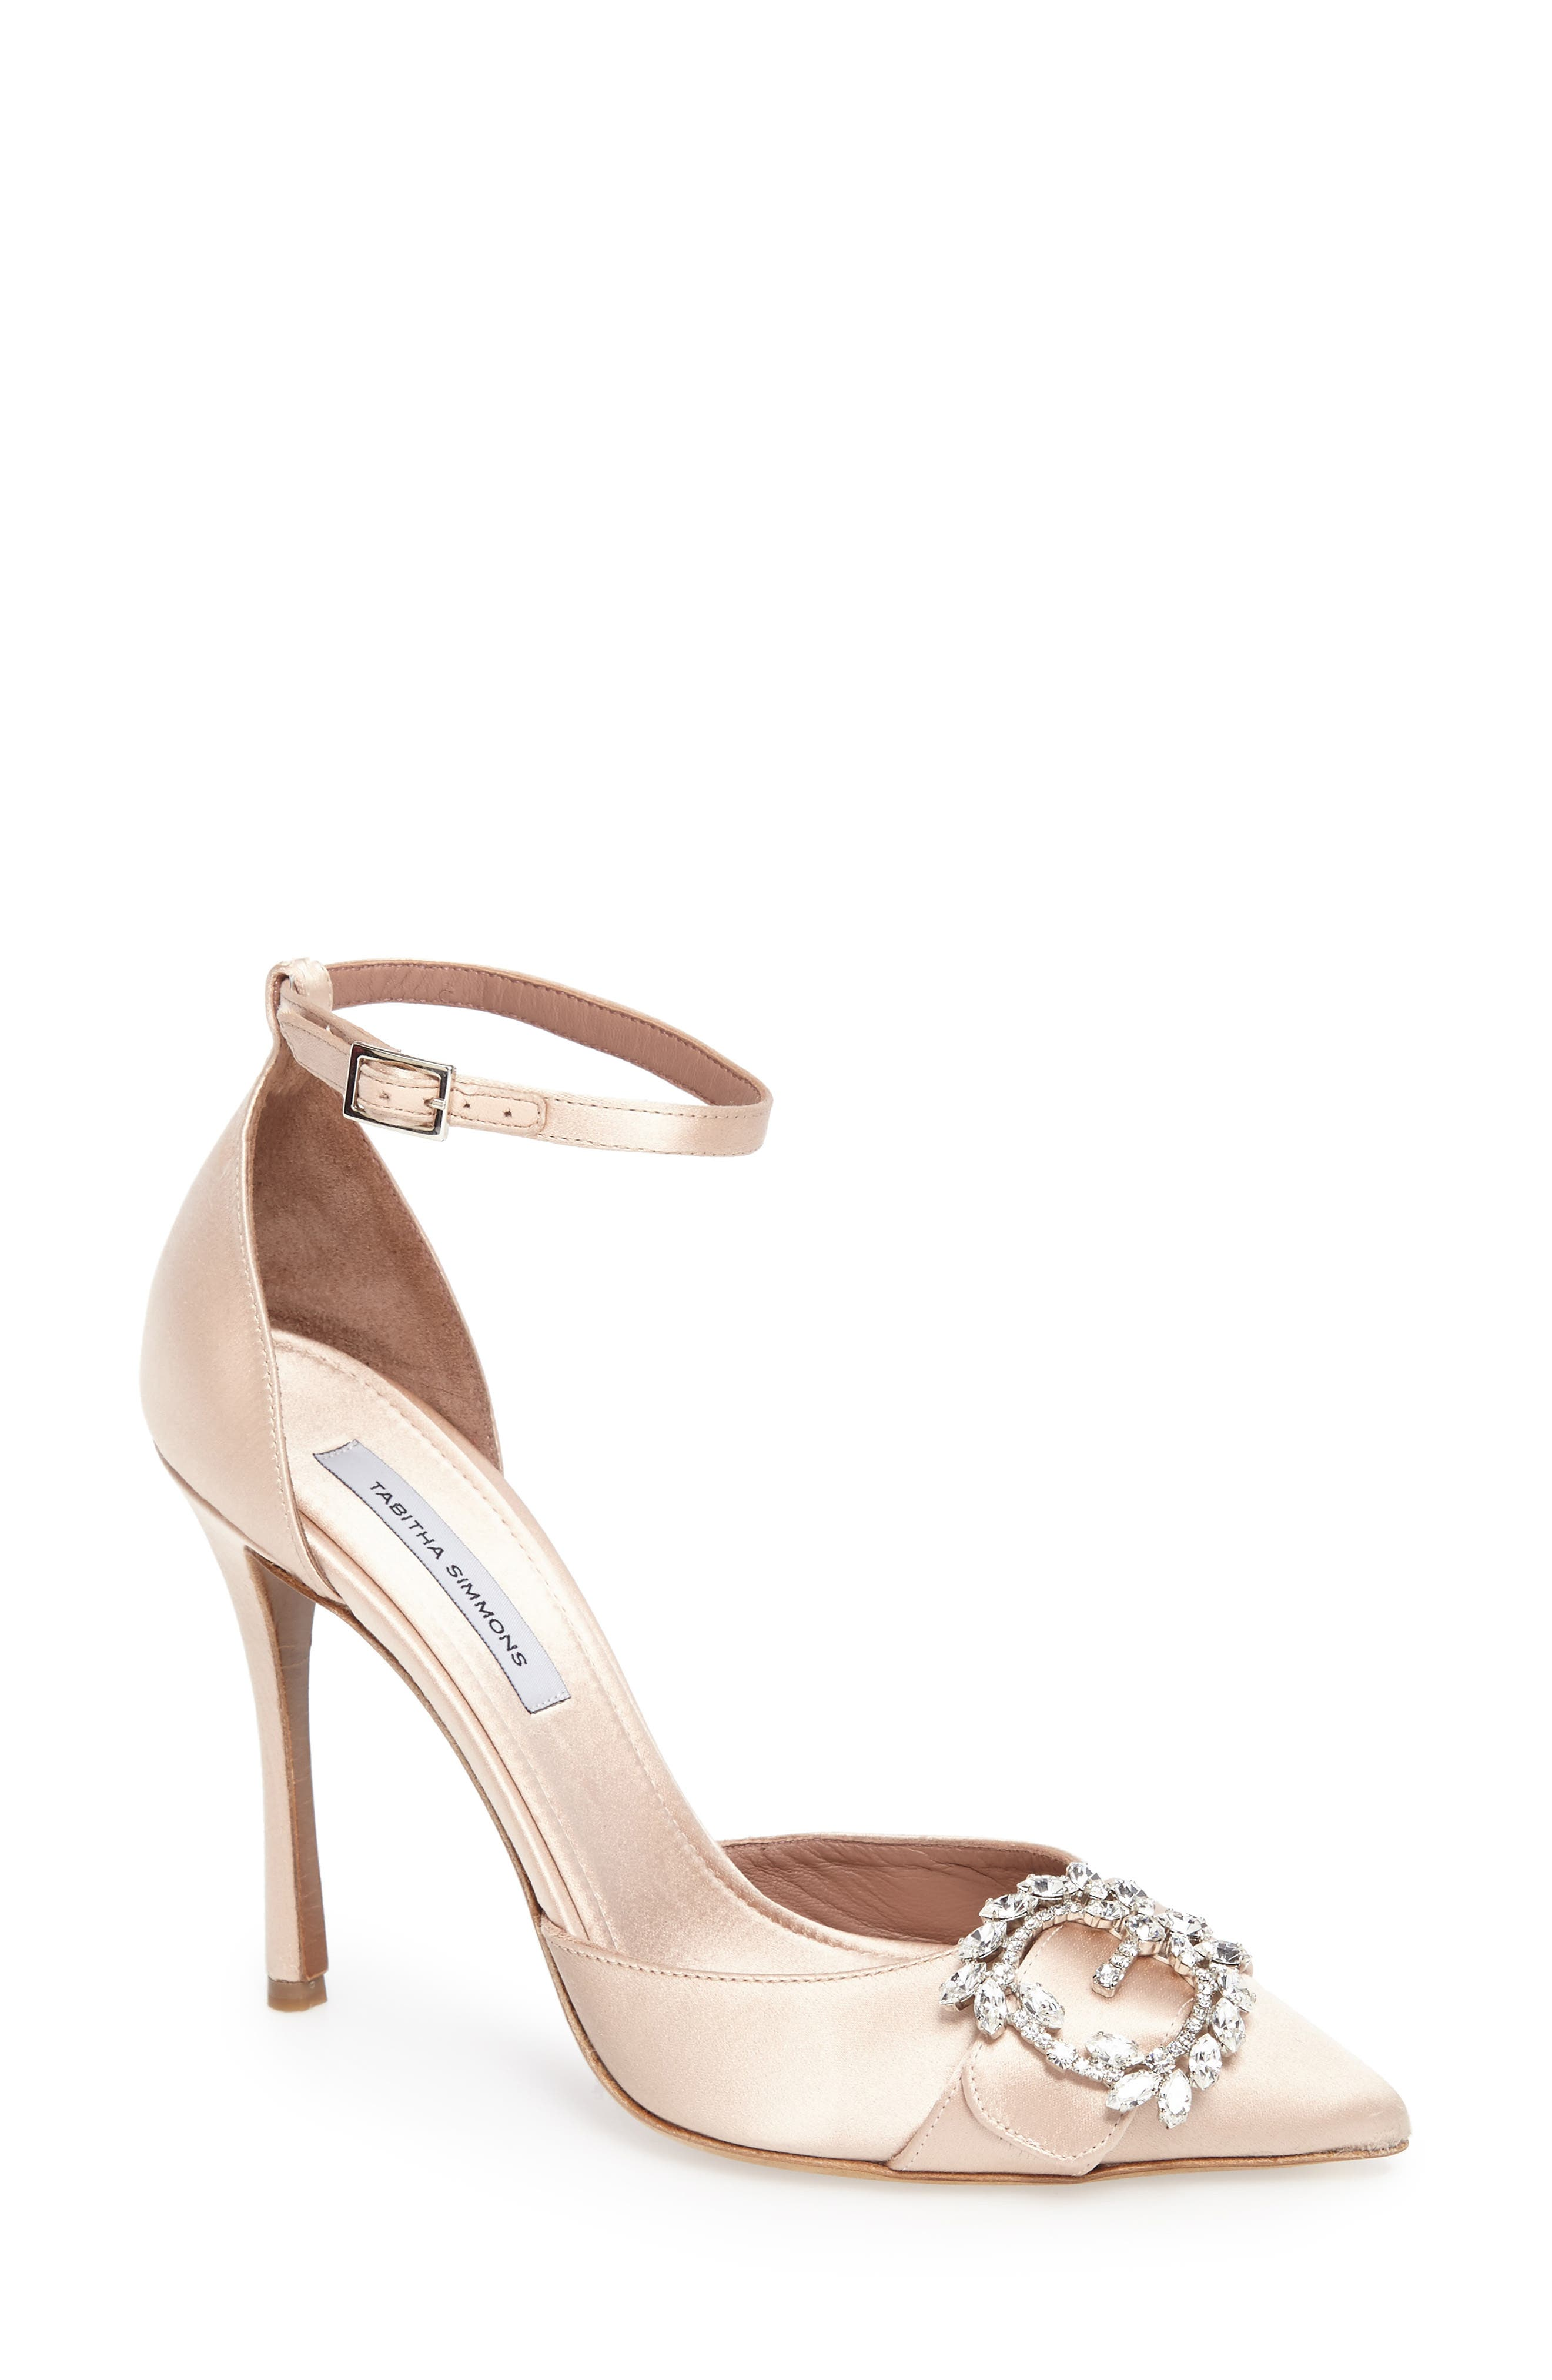 Tie The Knot Crystal Buckle Pump,                         Main,                         color, 250